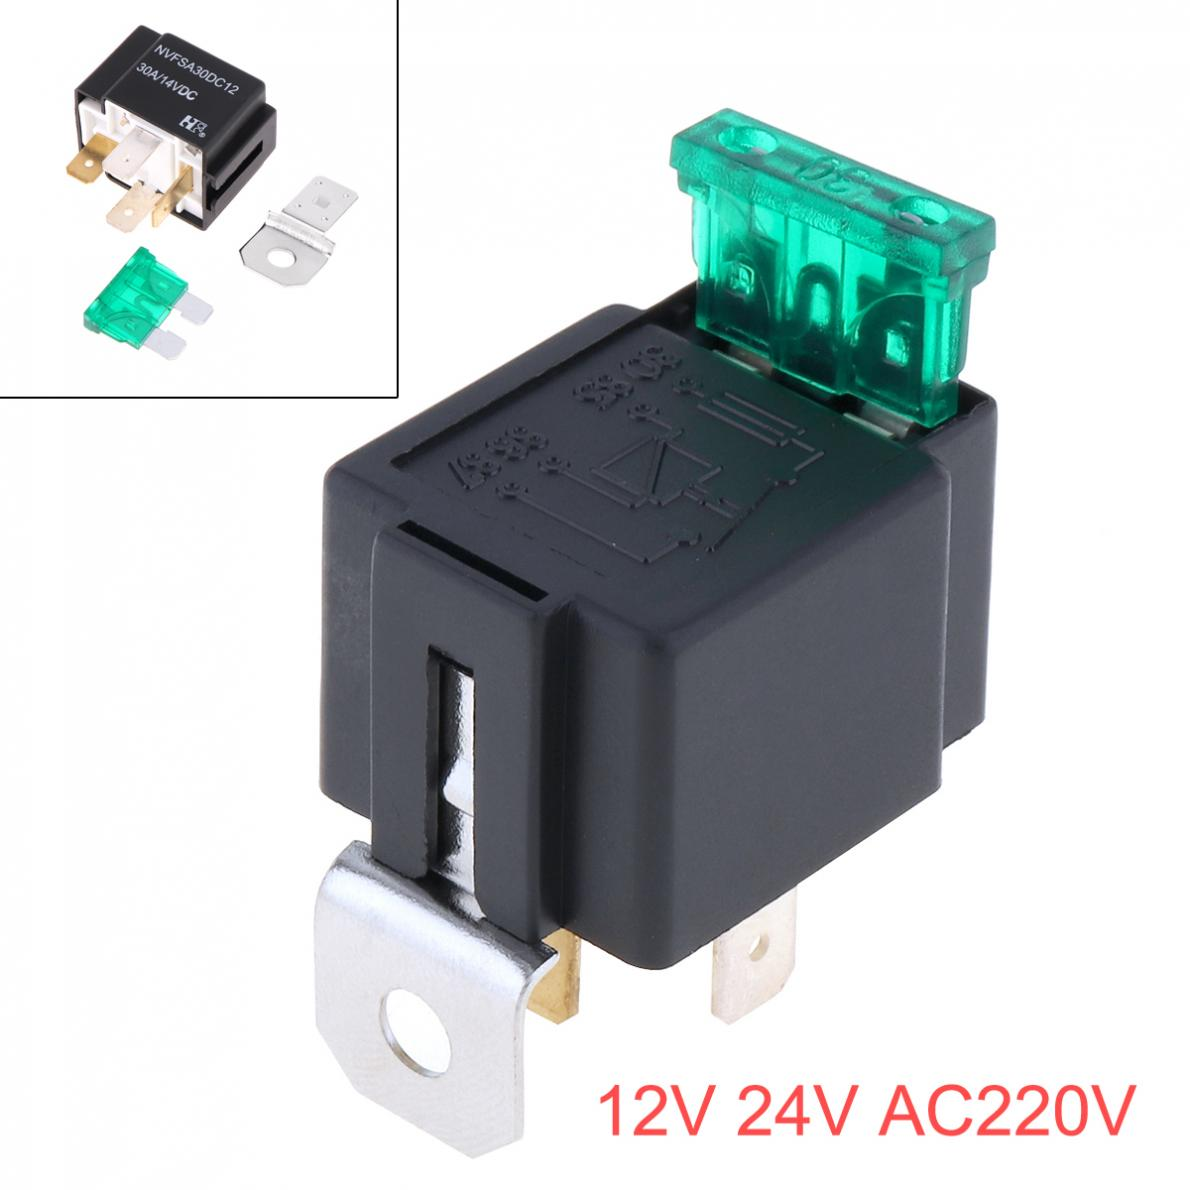 US $2 79 30% OFF|High Quality 12v 30A Automotive Car Auto Relay 4 Pin Relay  Socket Holder with Fuse for Car-in Car Switches & Relays from Automobiles